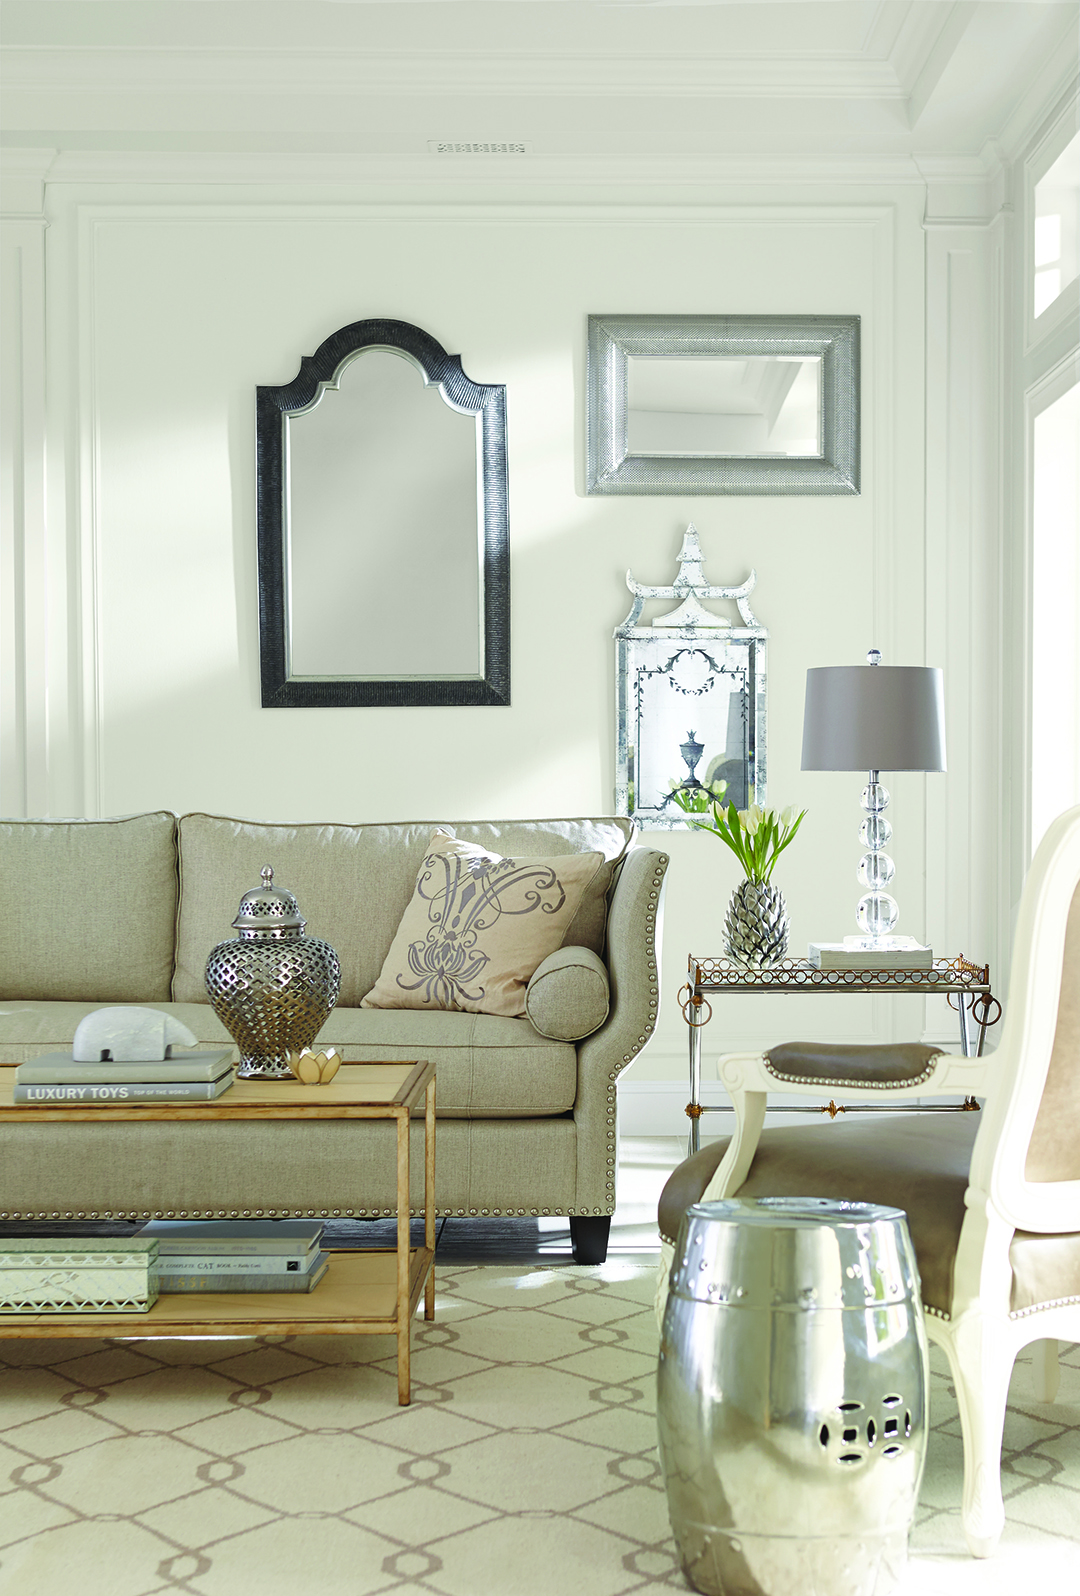 10 Best White Paint Colors—According to Experts